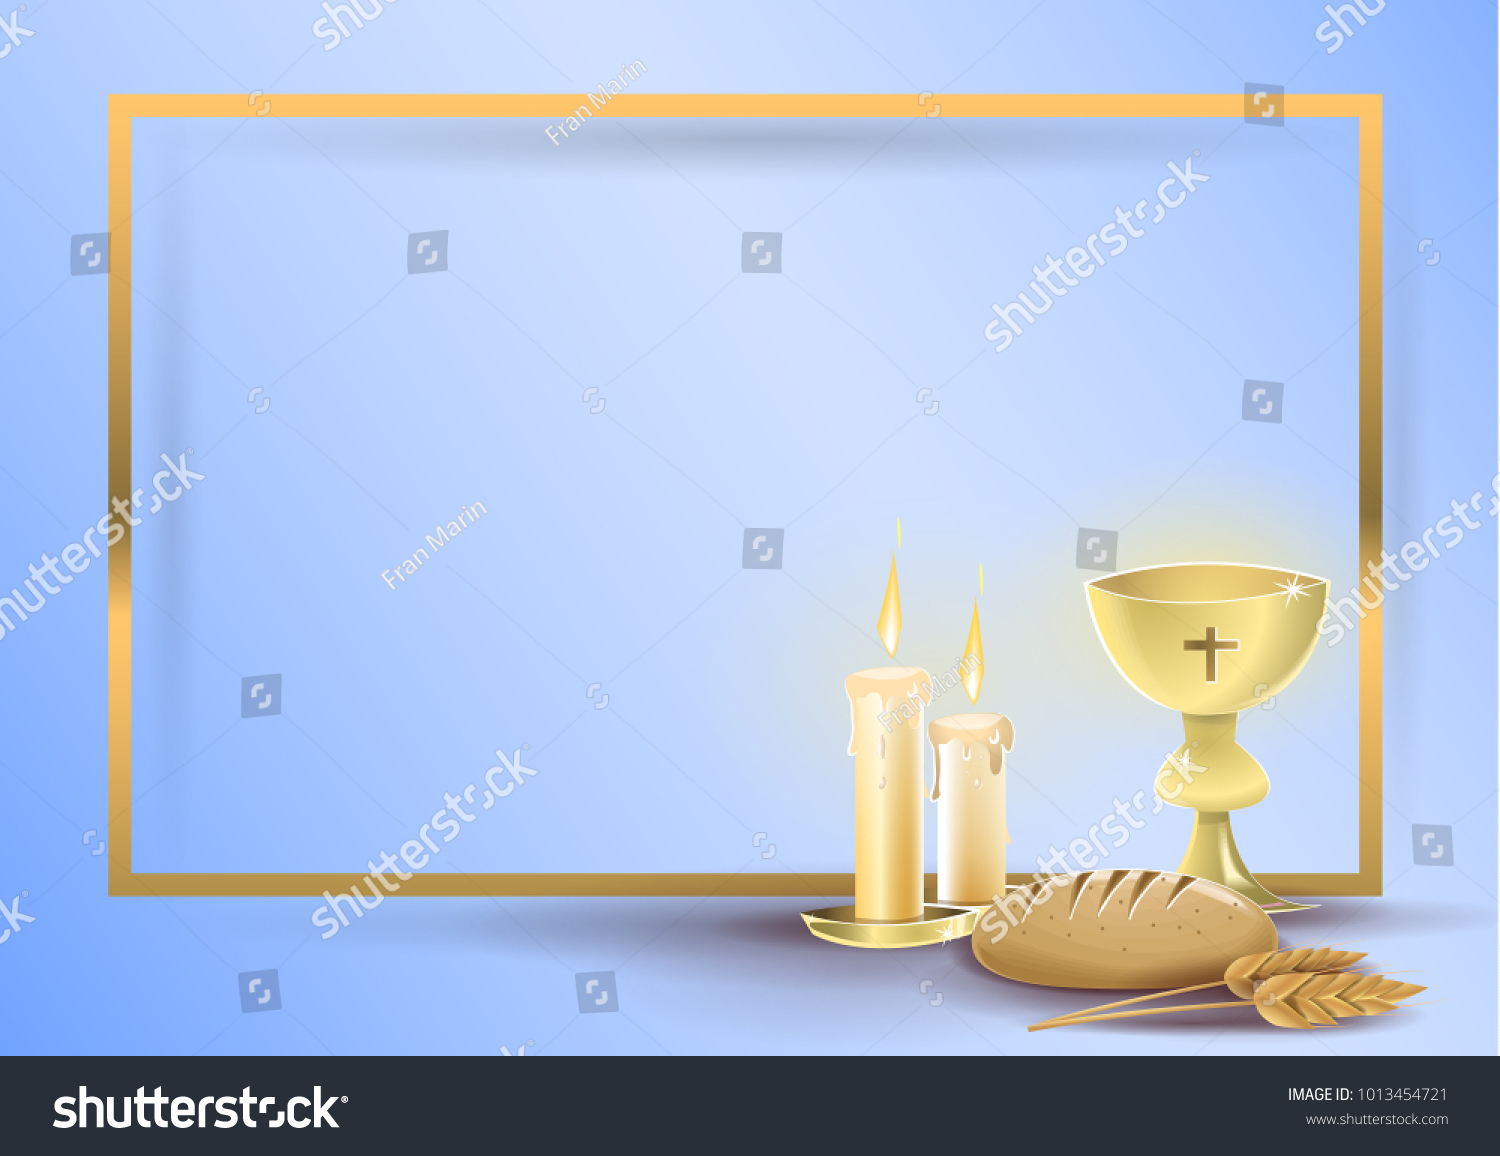 First communion religious invitation card religious stock photo first communion religious invitation card religious elements of communion and baptism on a blue stopboris Image collections